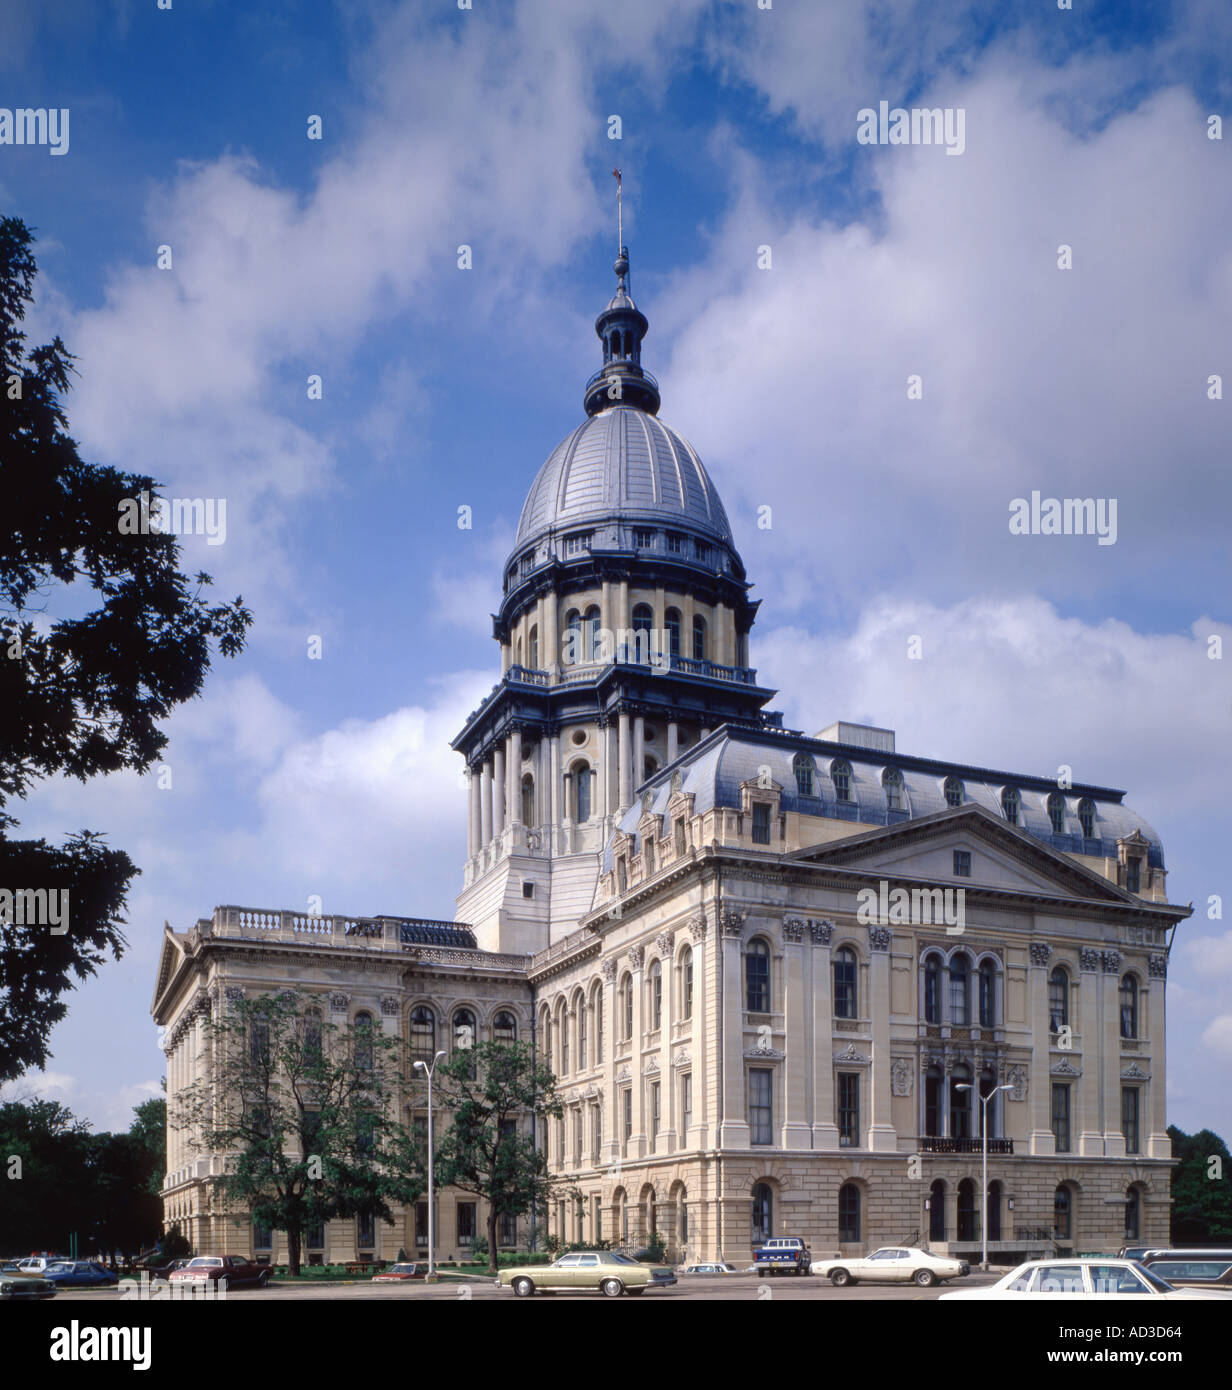 Illinois State Capitol building located in Springfield in Illinois - Stock Image